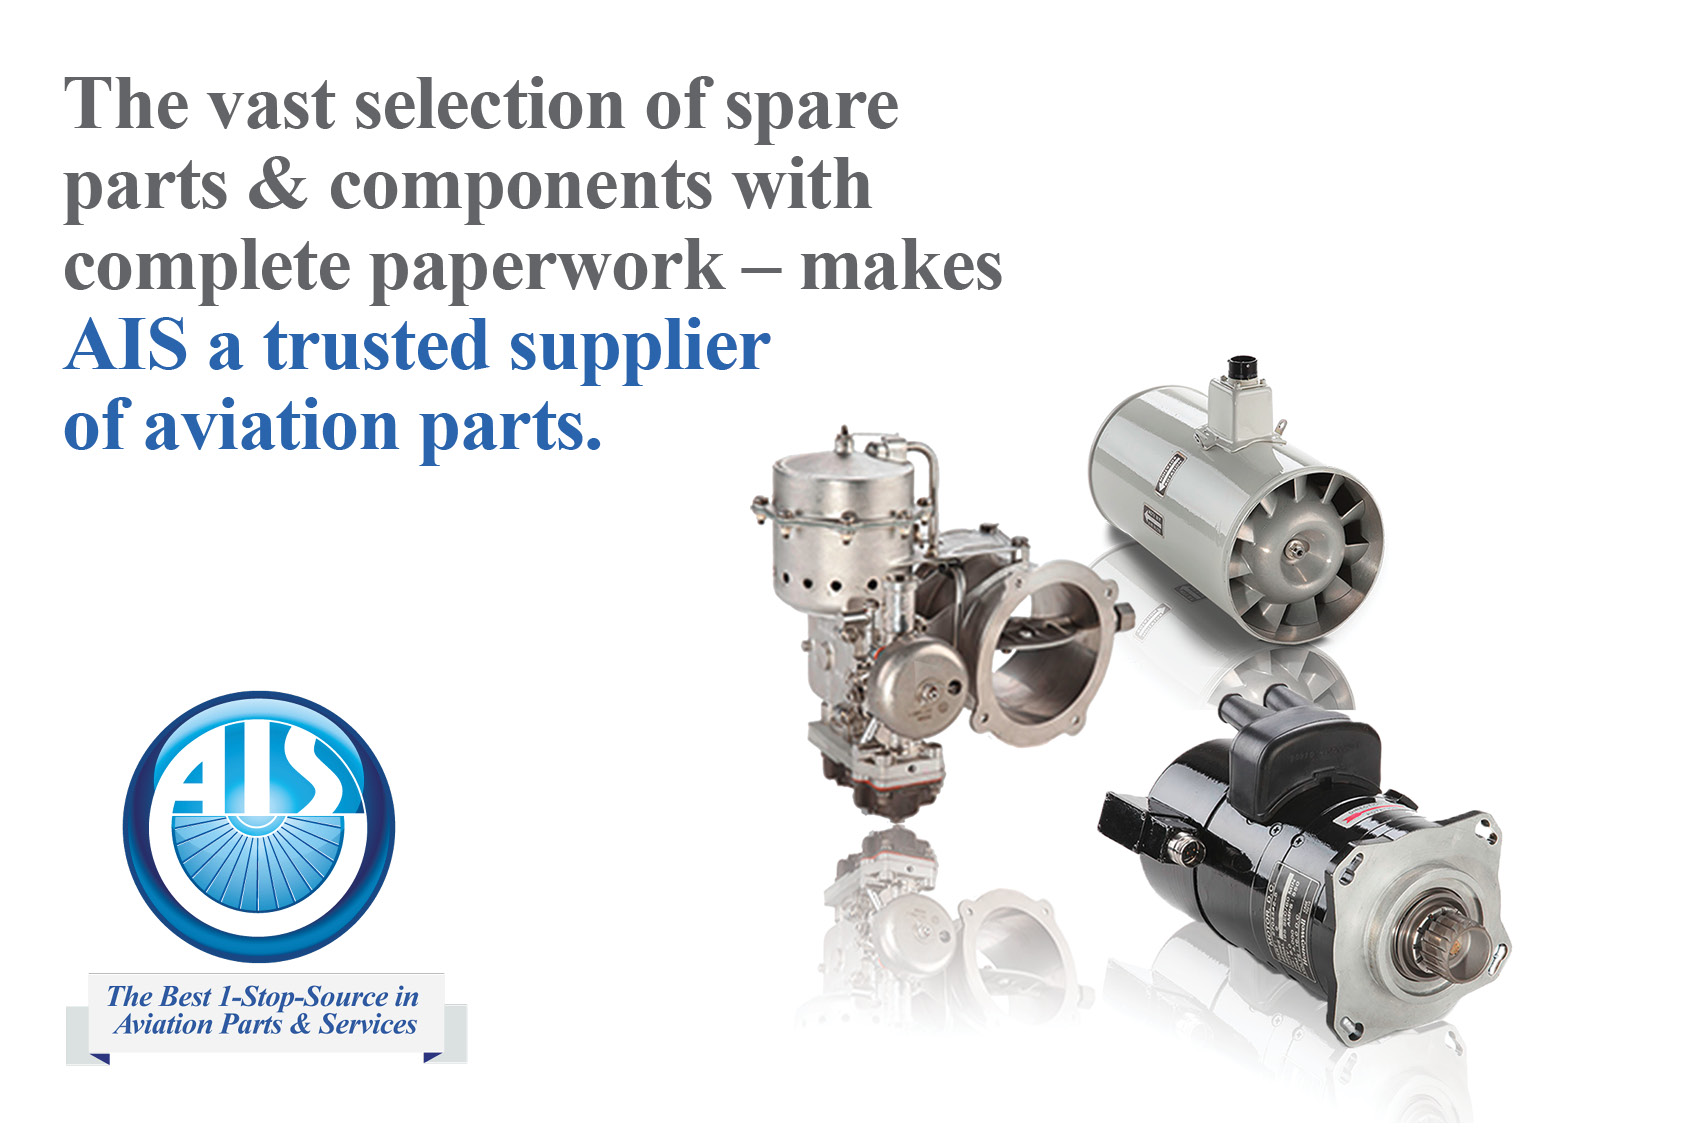 We aim to support aircraft operators and the Global Aviation industry as a whole with cost effective quality OEM Equipment and parts.